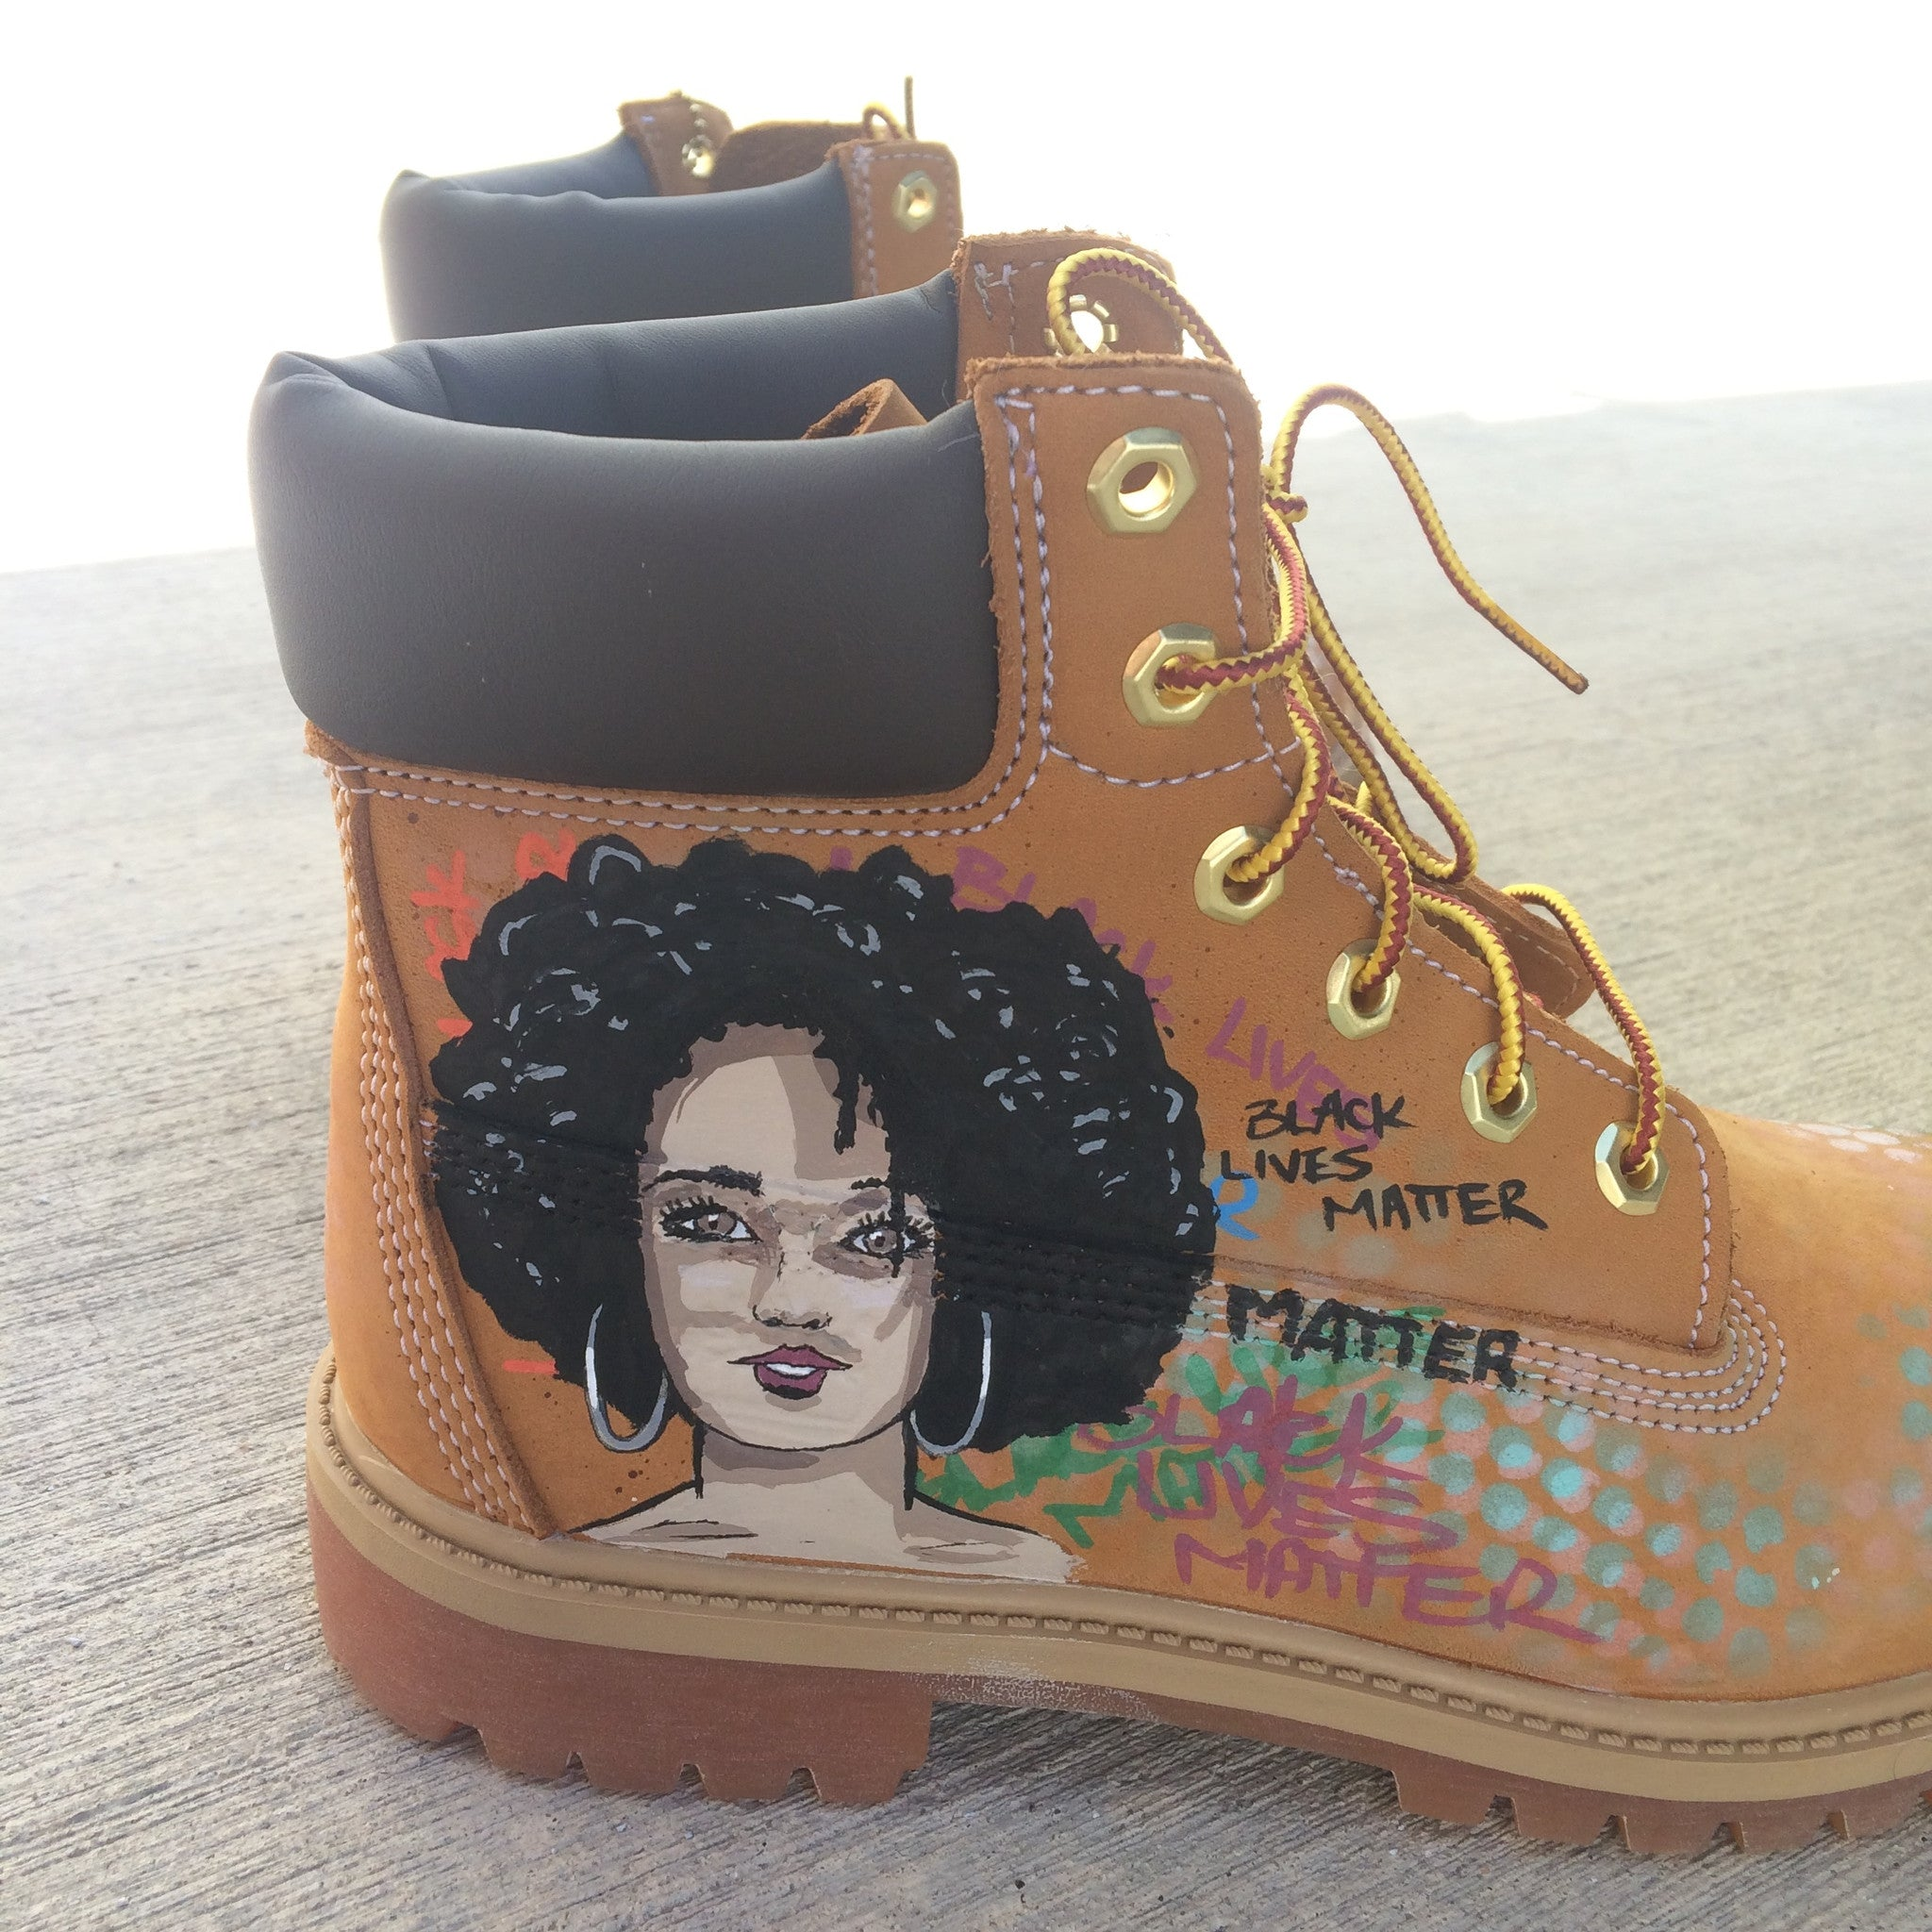 Custom Hand Painted Timberland Boots Black Lives Matters